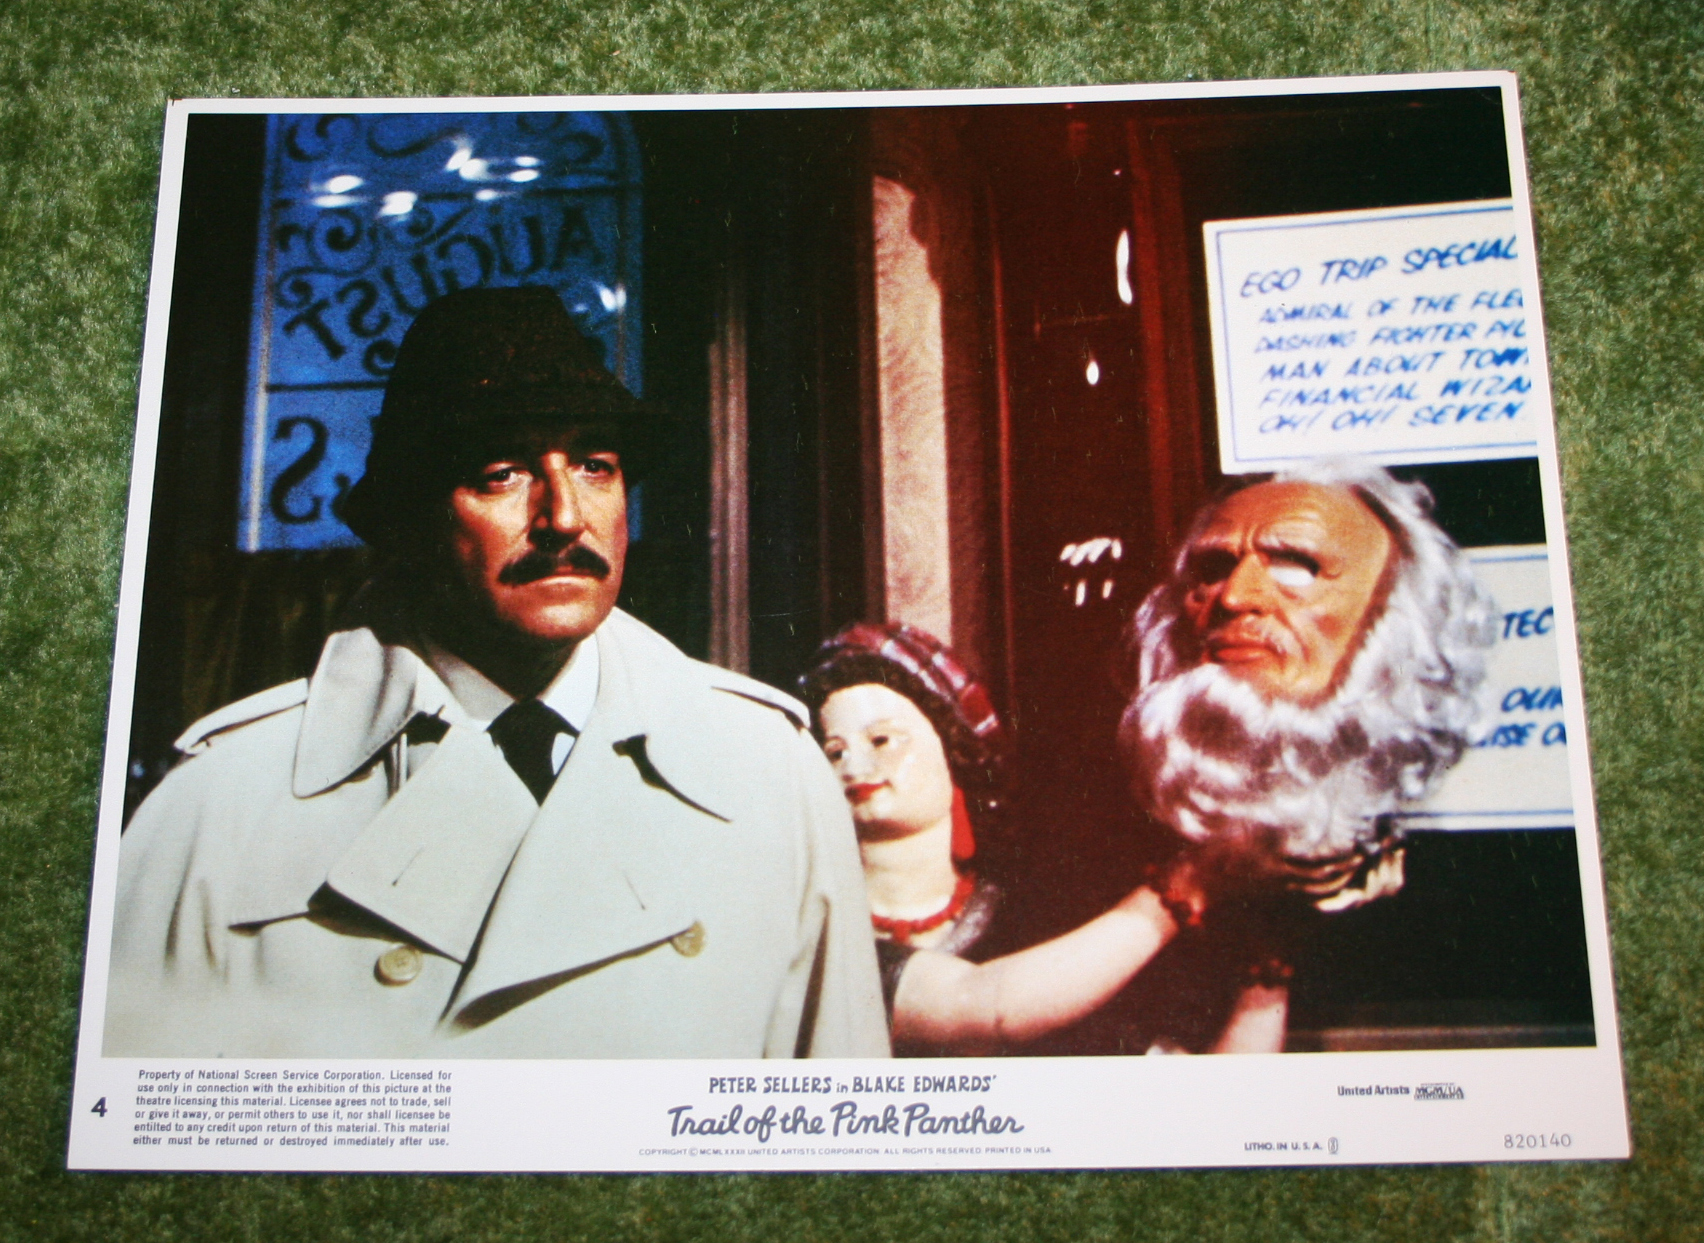 Trail of the Pink Panther Stills